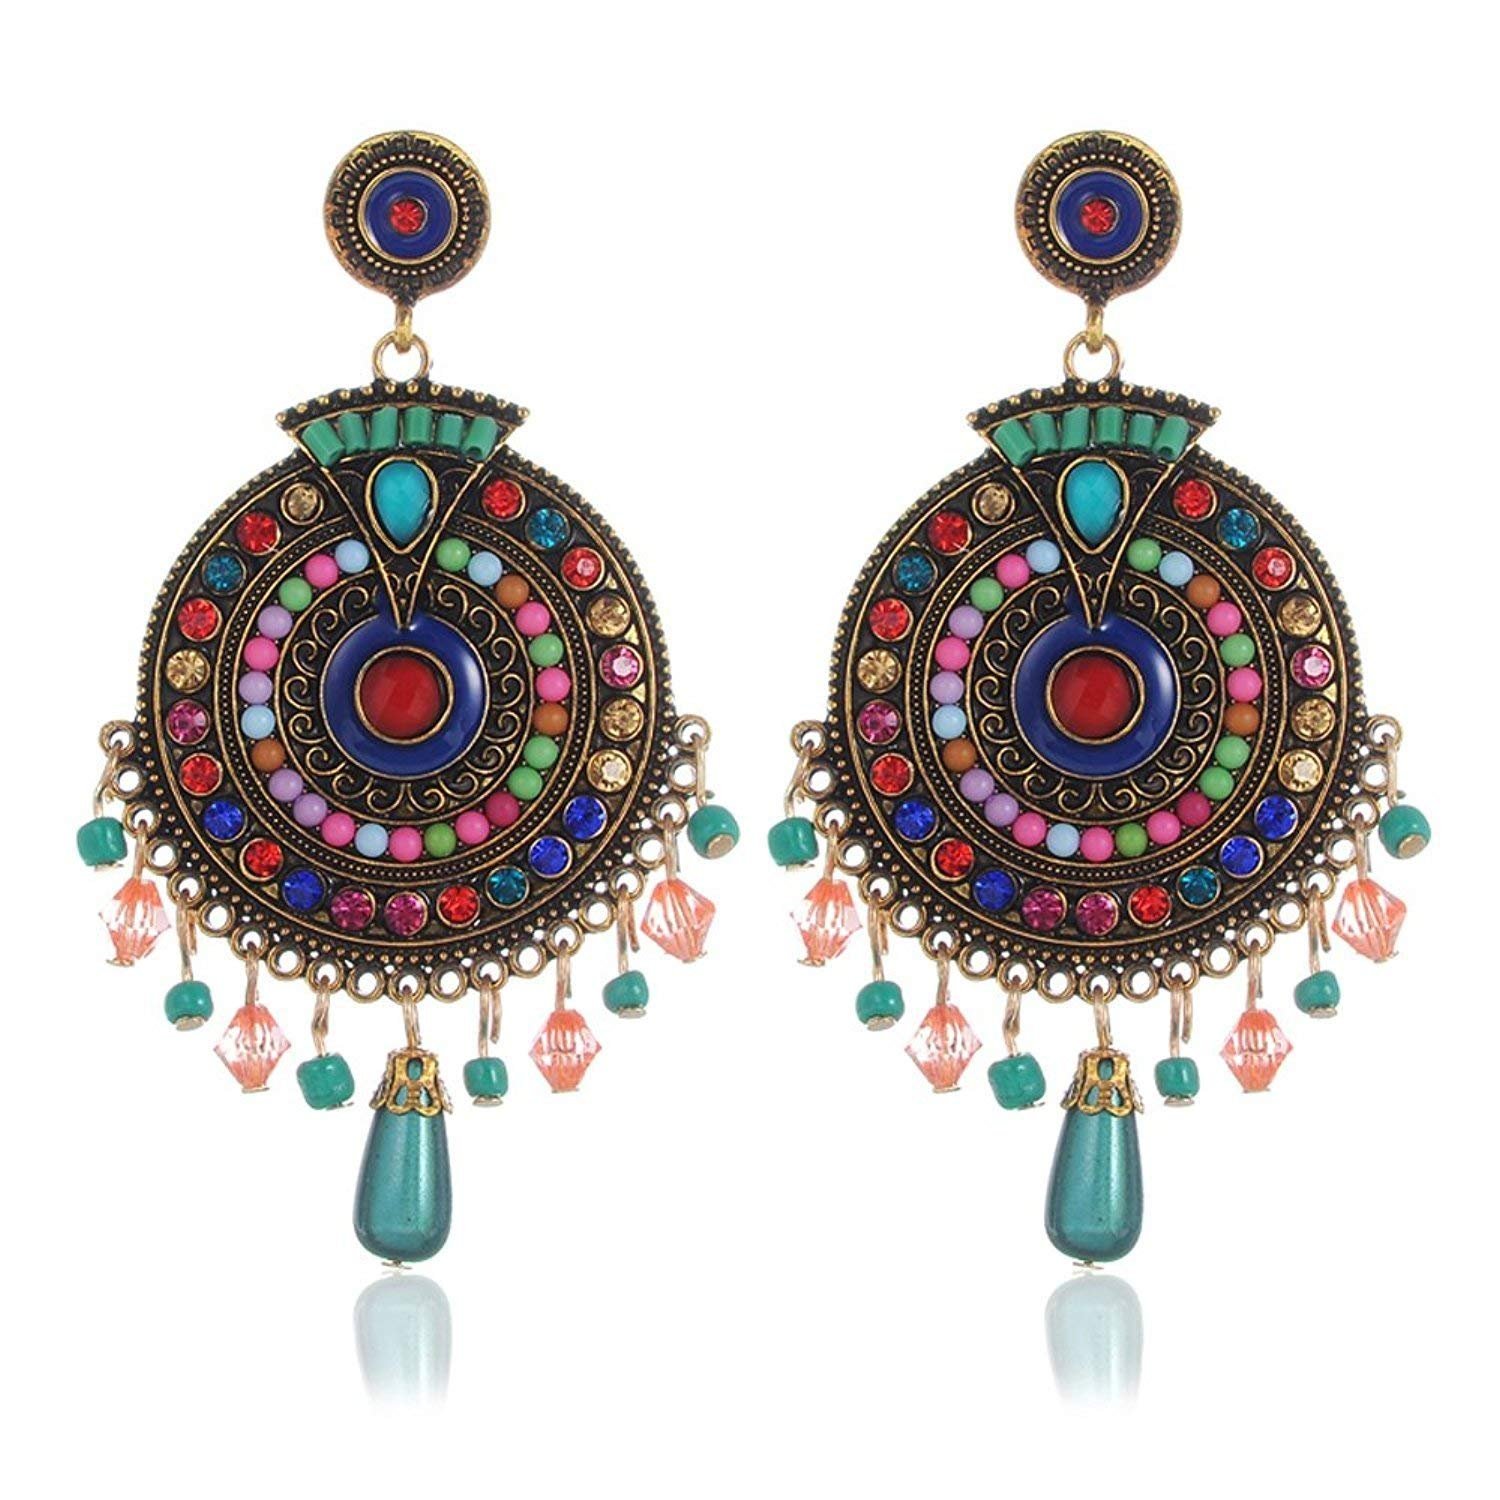 Top 5 Artificial Earrings for Wedding India 2020